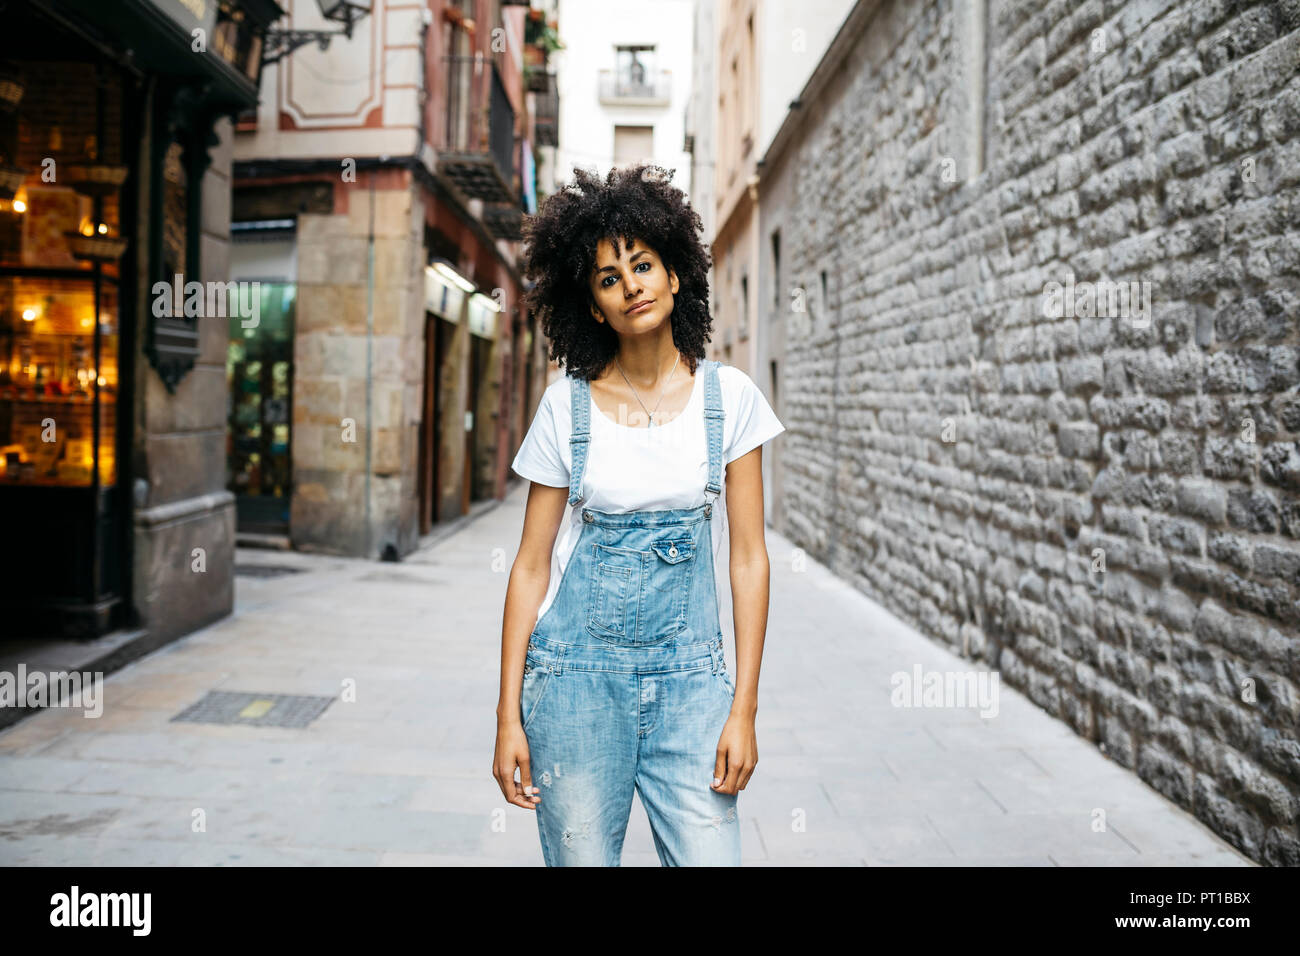 Spain, Barcelona, portrait of woman with curly hair wearing dungarees - Stock Image